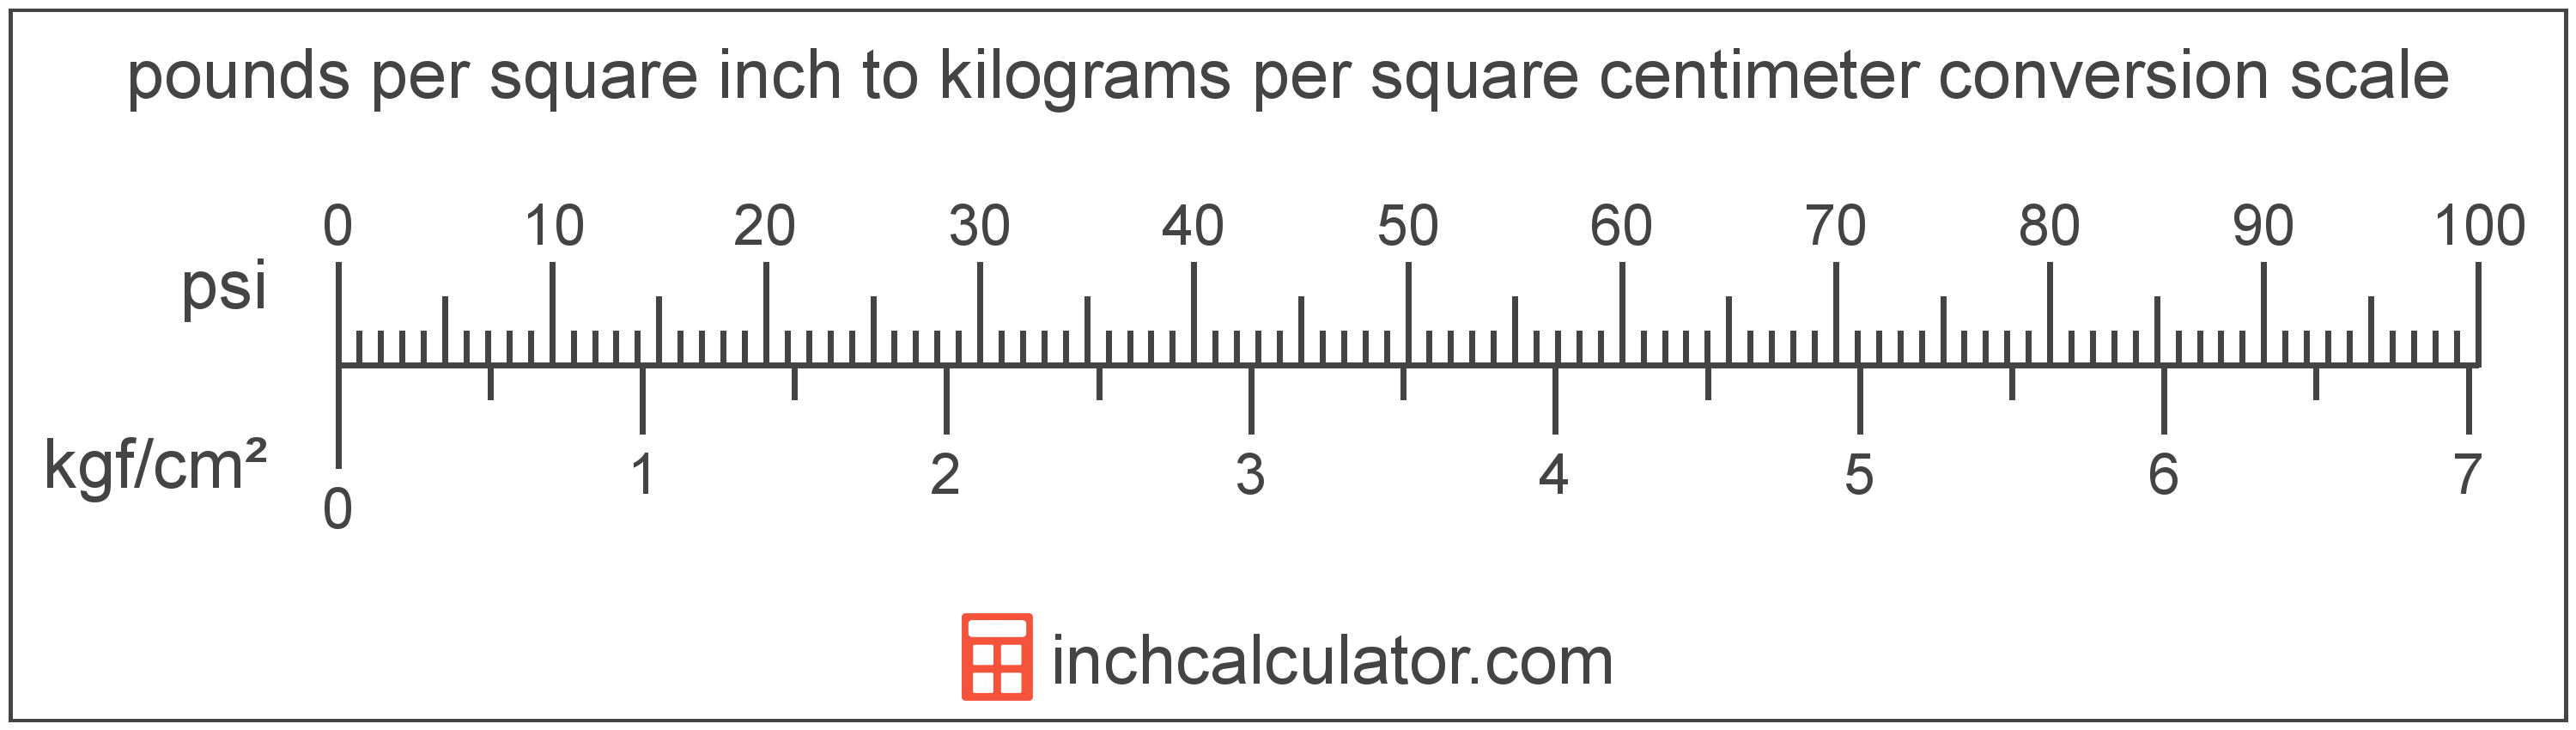 Convert Pounds Per Square Inch To Kilograms